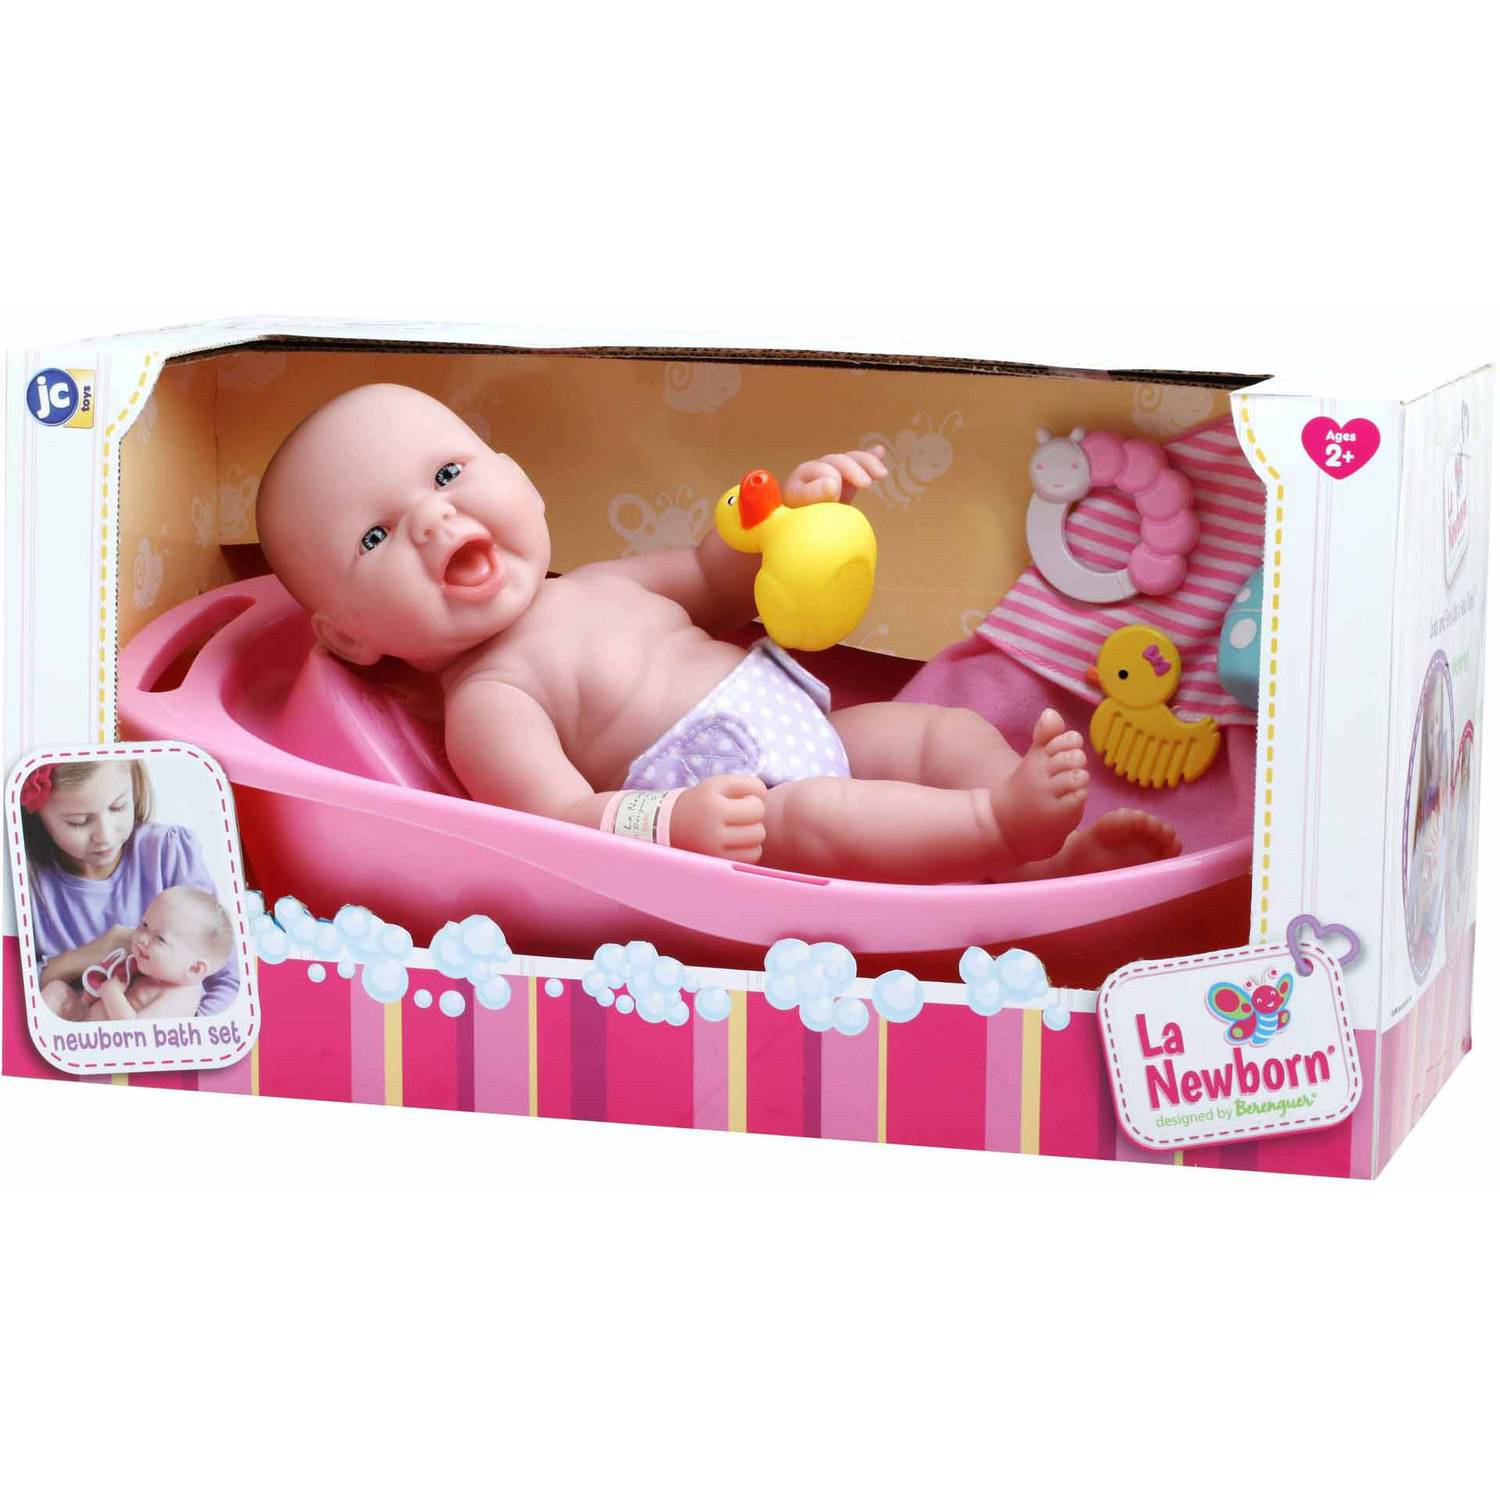 you me baby doll bathtub set tubethevote. Black Bedroom Furniture Sets. Home Design Ideas